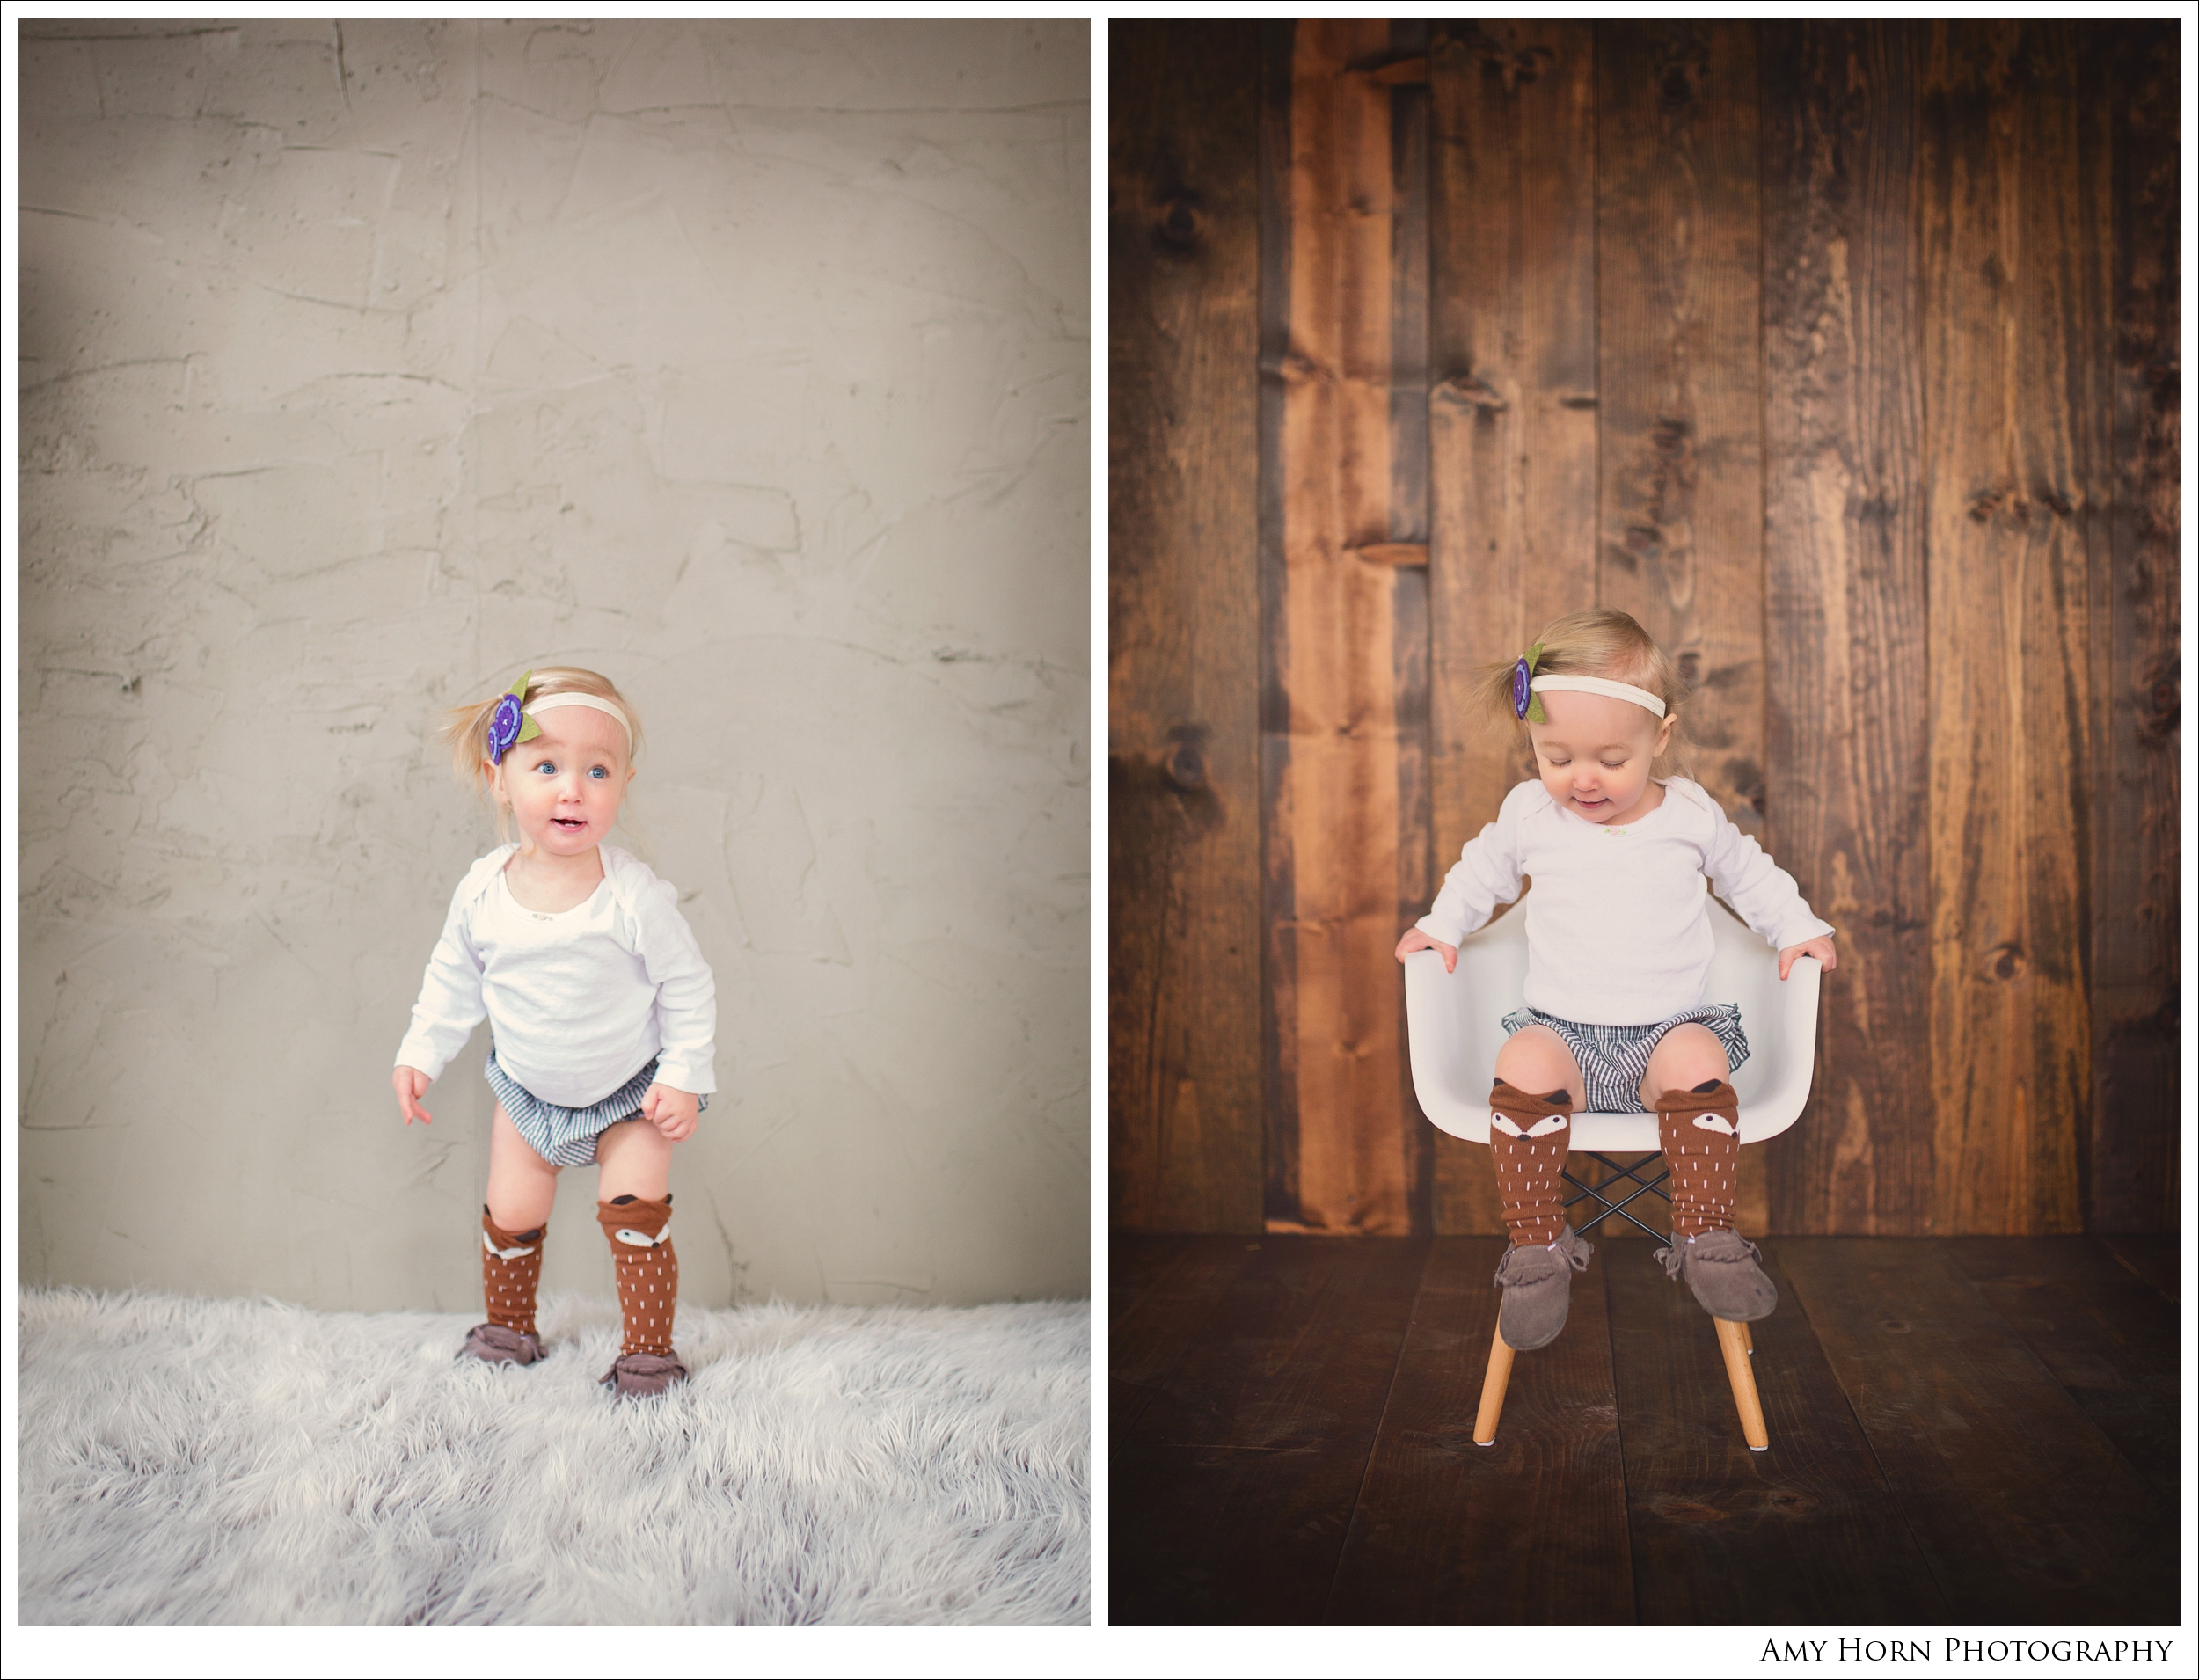 cincinnati ohio photographer, studio photographer, spring grove studios, lawrenceburg indiana photographer, northern kentucky photographer, studio photography, baby studio photography, six month old photo inspiration, self sitter photo inspiration, baby girl photo, amy horn photography